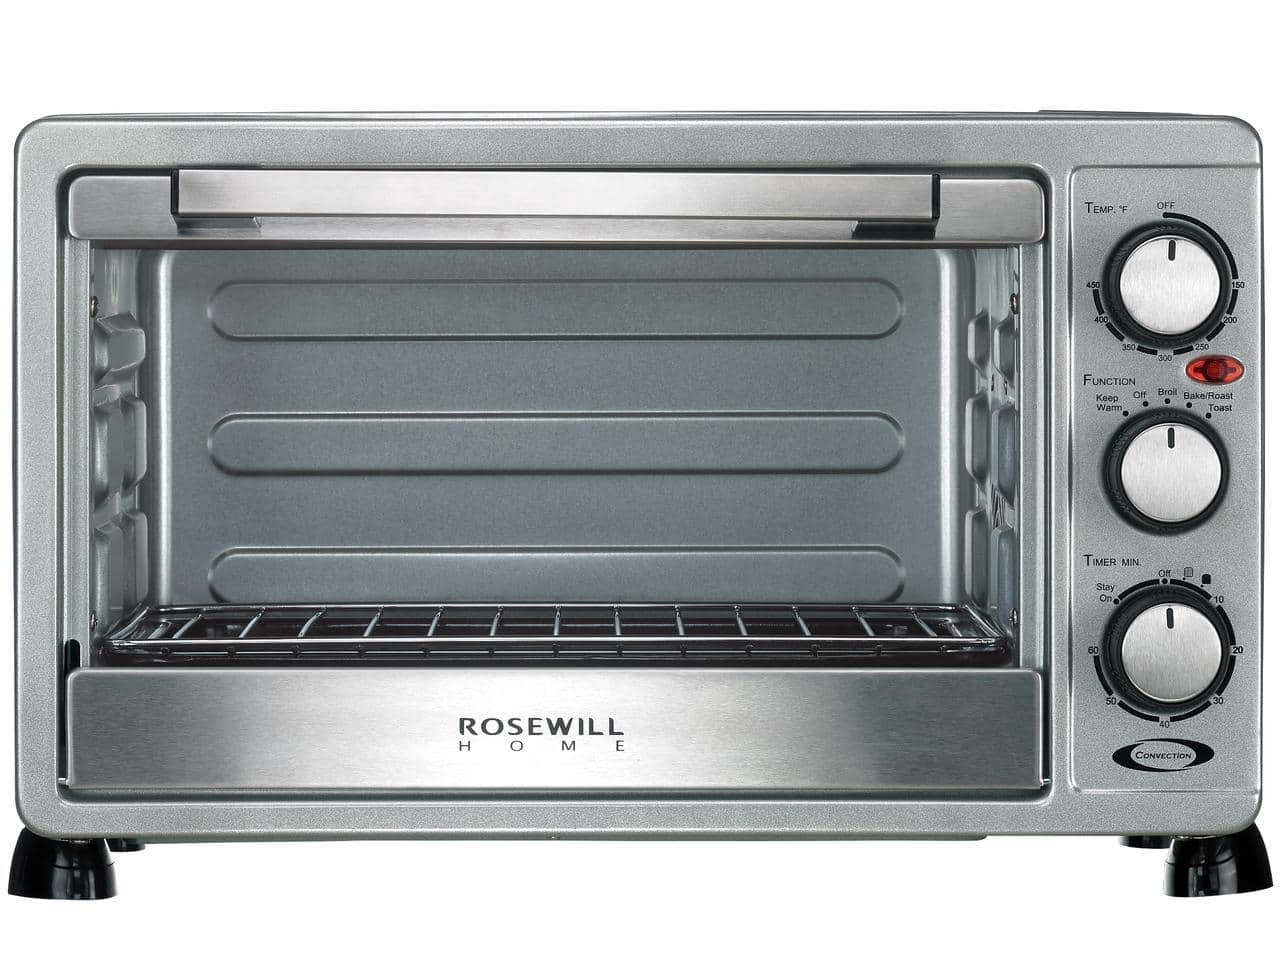 Rosewill 6-Slice Convection Toaster Oven Countertop, Stainless Steel,  RHTO-17001 for $39 after 50% discount code f/s@newegg.com